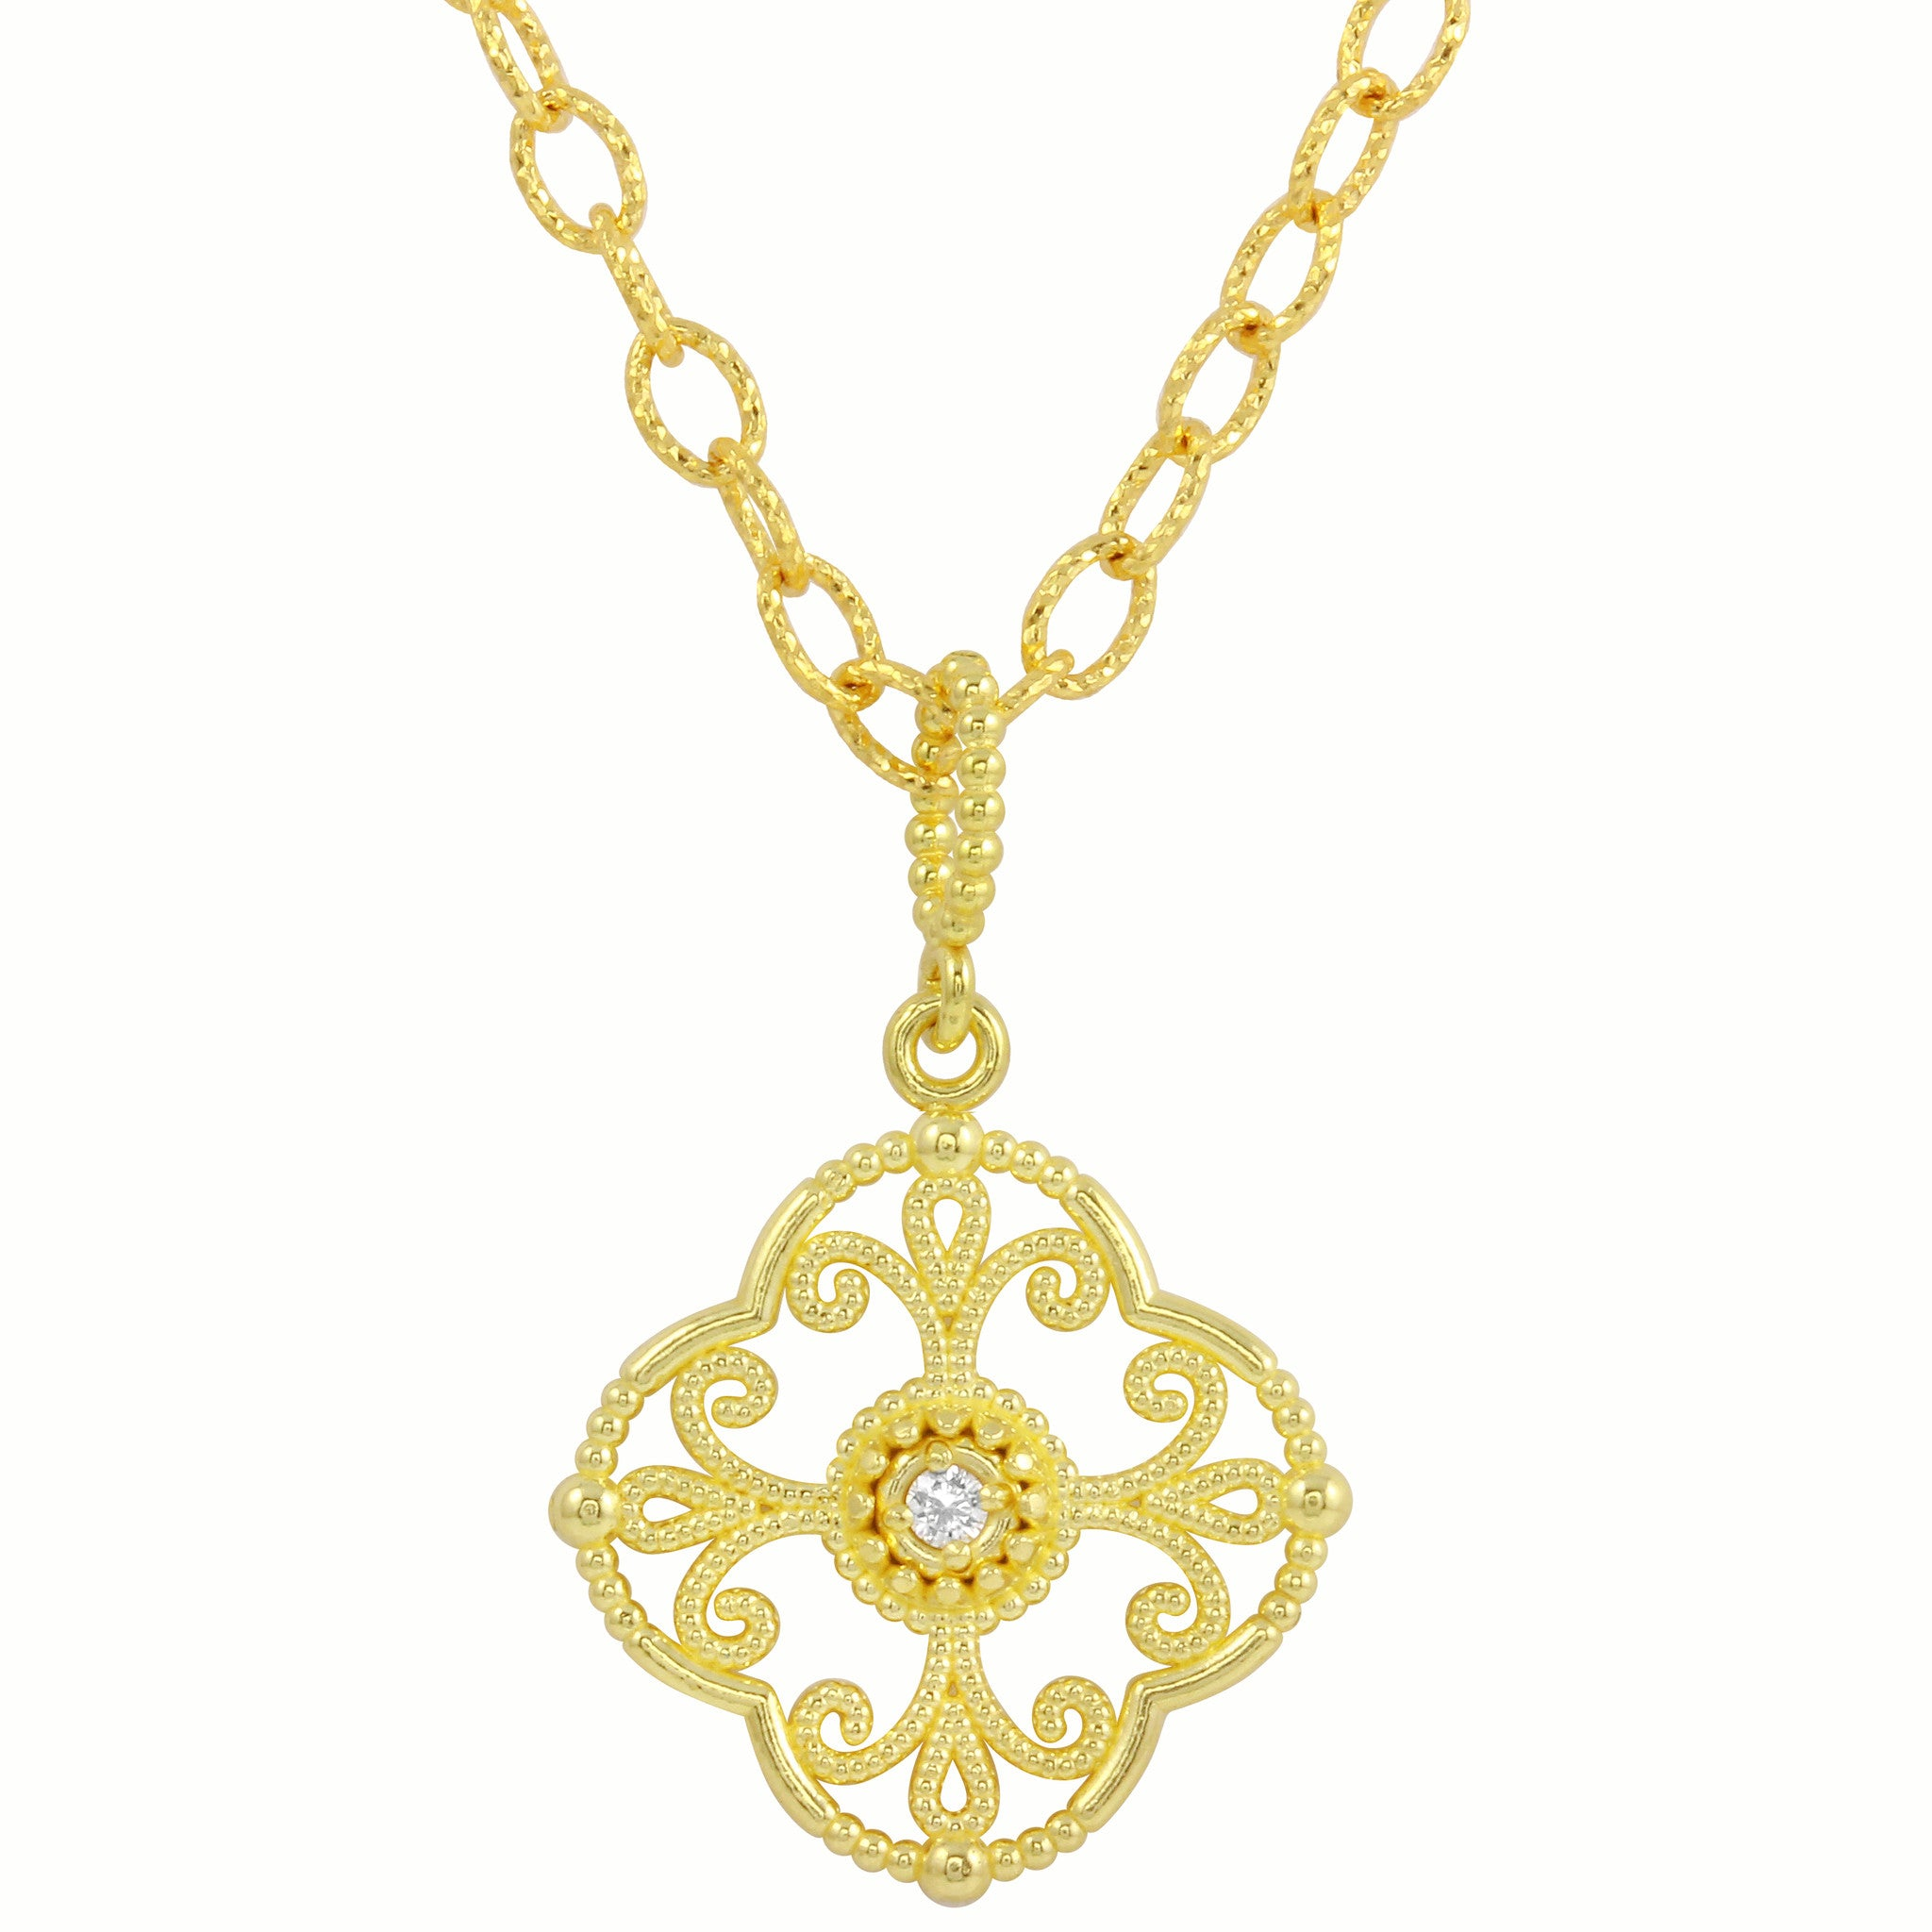 Amyn arabesque diamond filigree pendant necklace favery arabesque diamond filigree pendant necklace aloadofball Choice Image